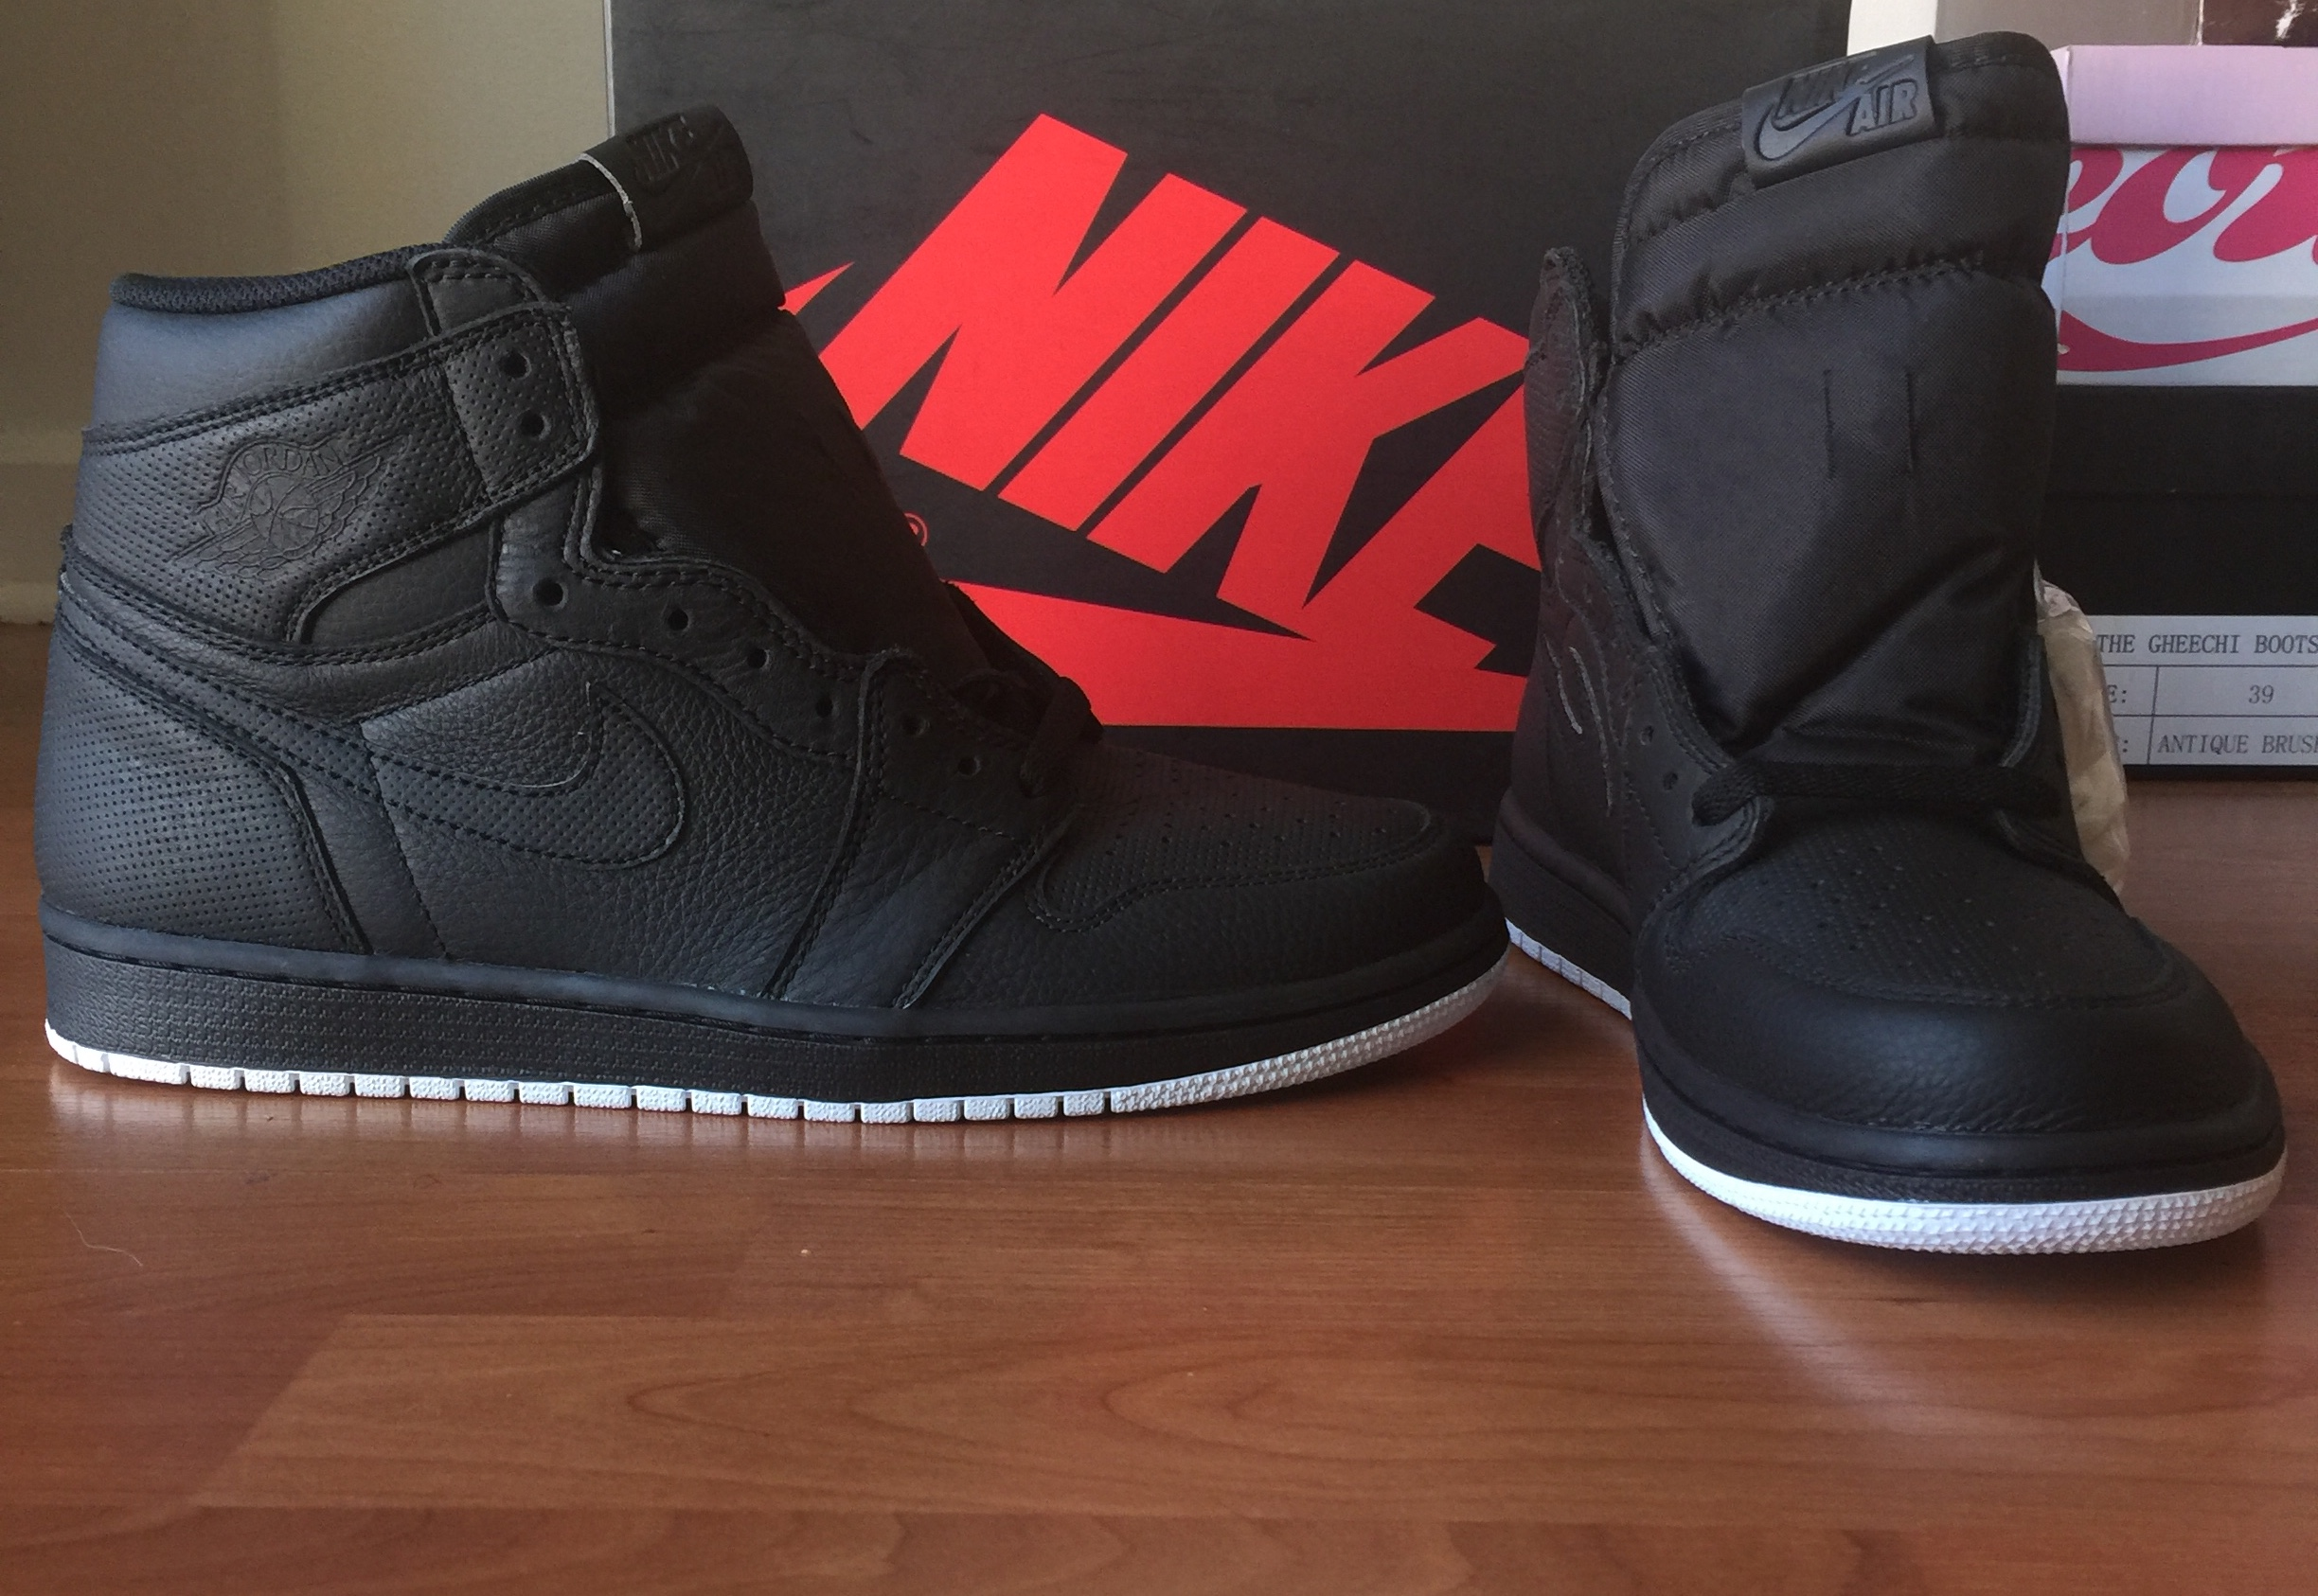 5e92356f3197 Nike Air Jordan  1 s Retro Perforated Pack High OG - Thumbnail ...